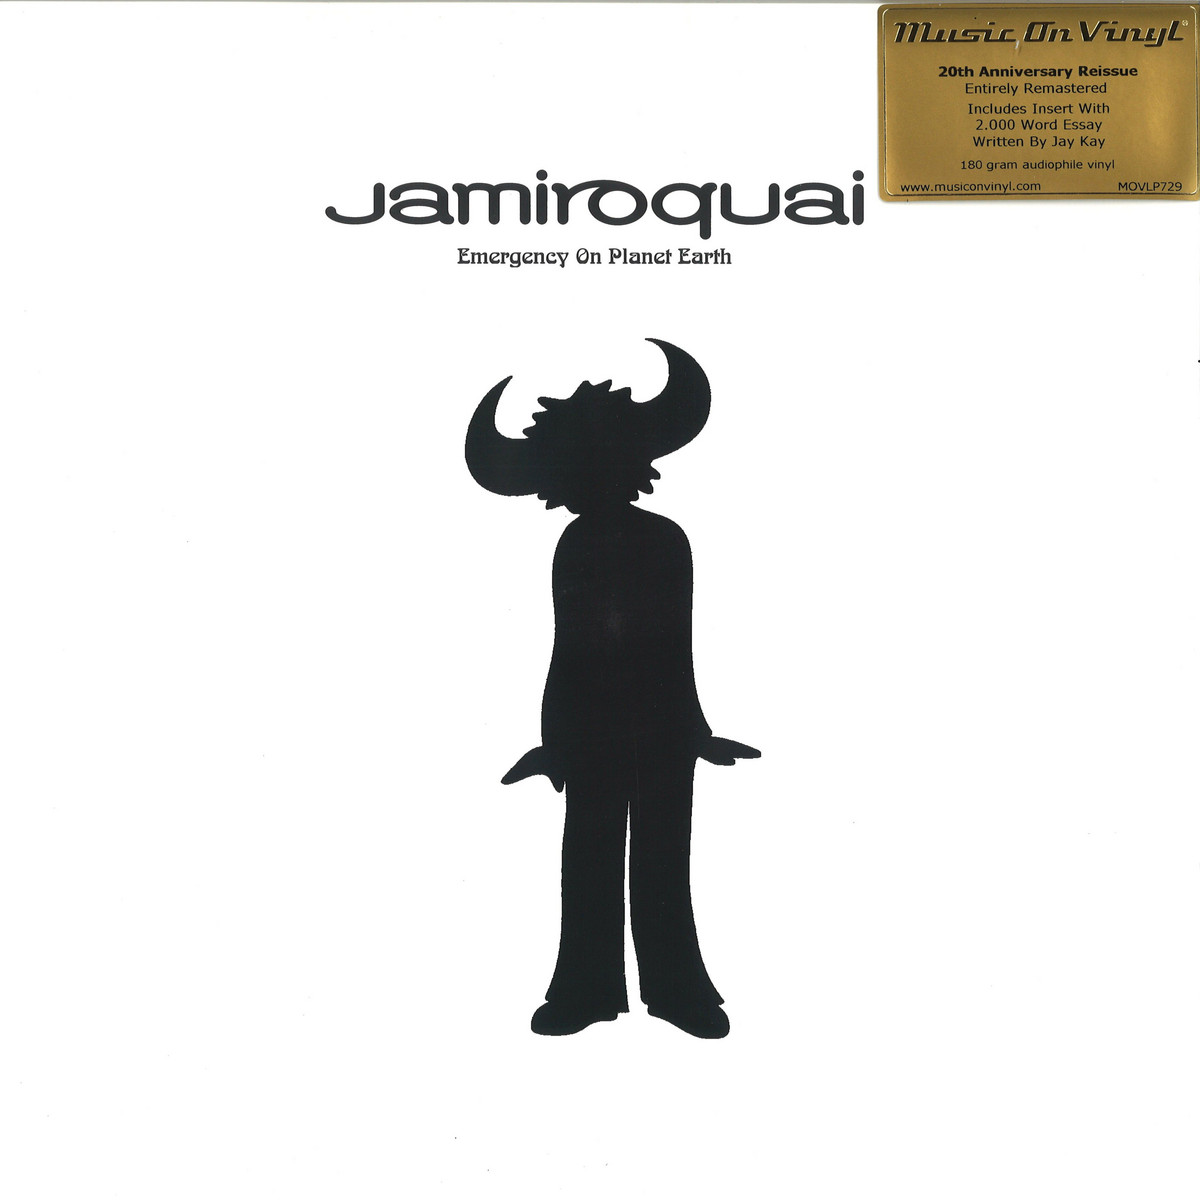 jamiroquai emergency on planet earth music on vinyl movlp jamiroquai emergency on planet earth music on vinyl movlp729 12inch